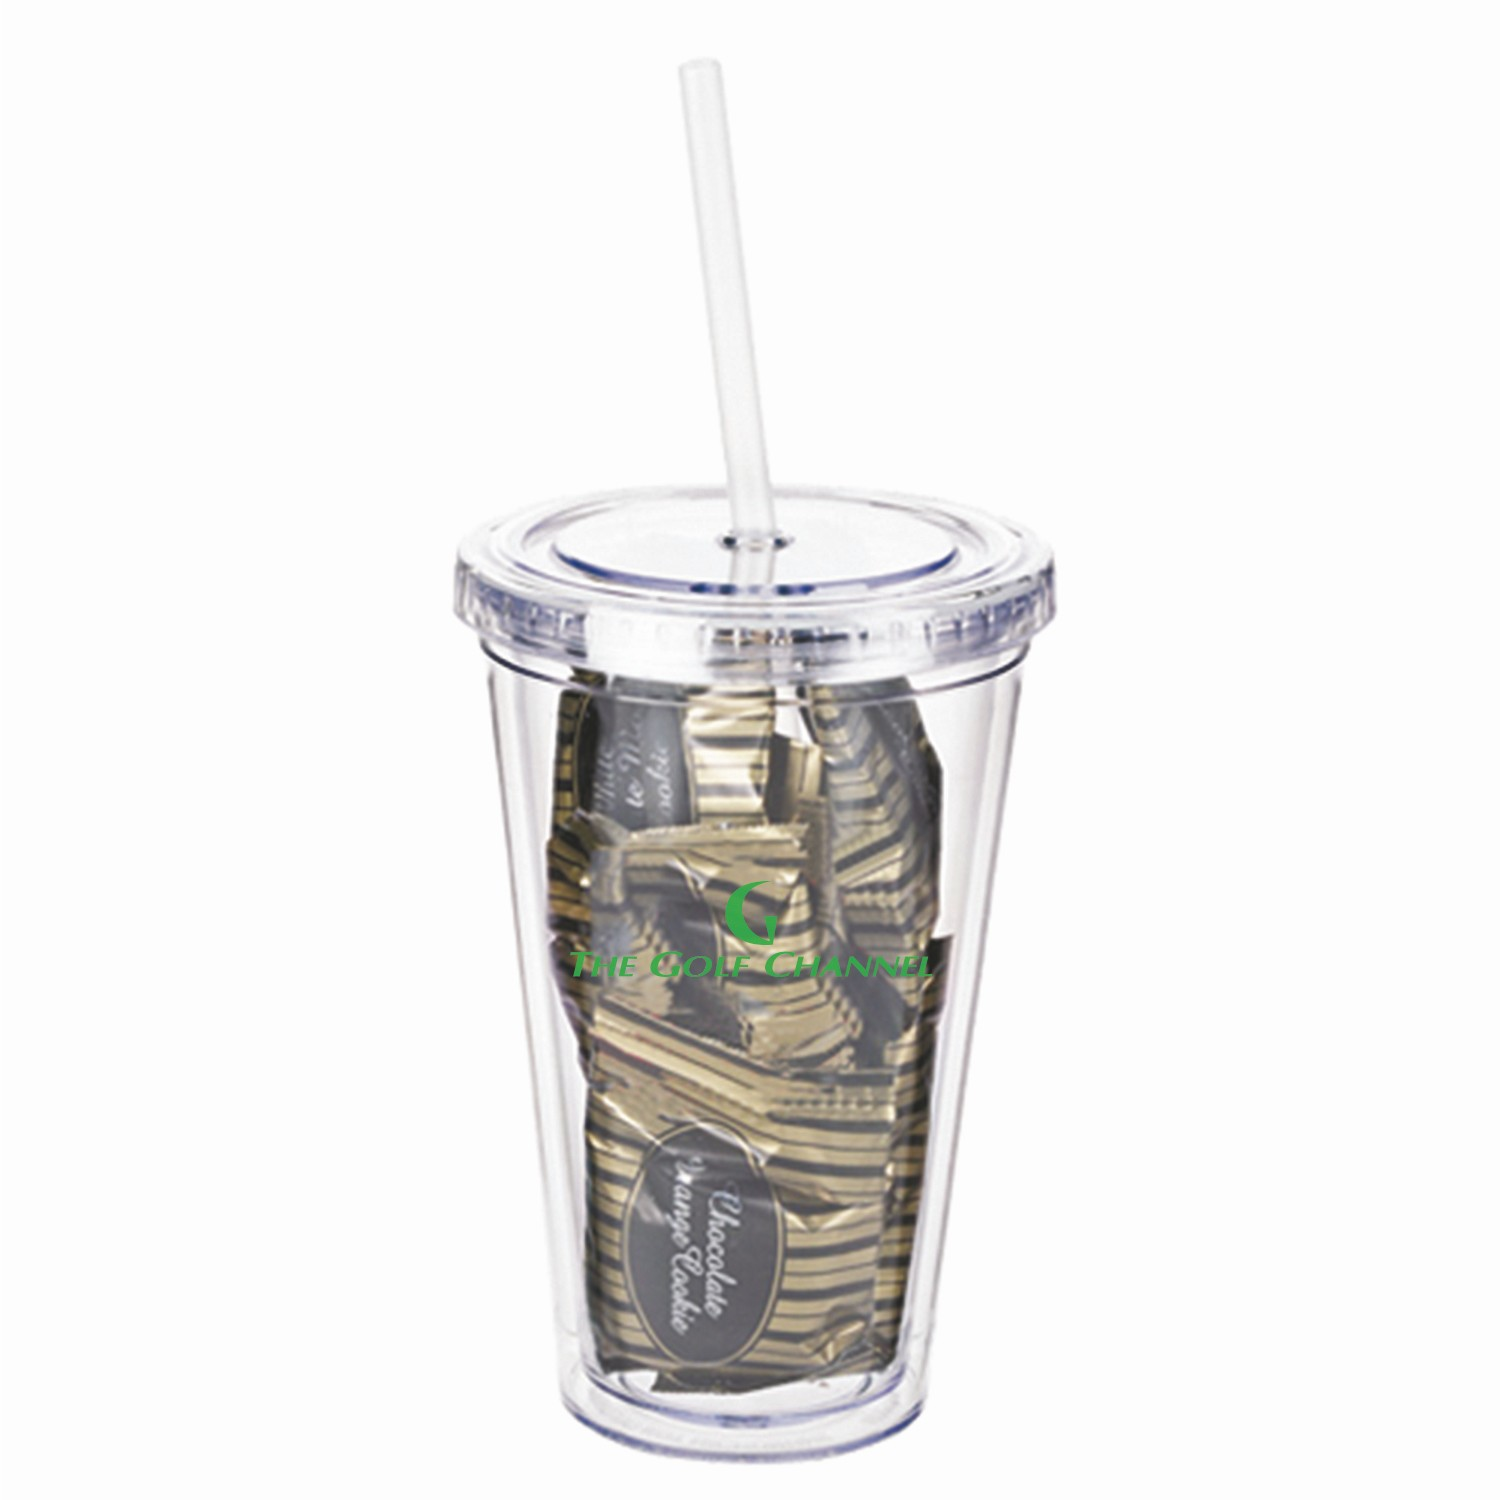 16 Oz. Clear Acrylic Tumbler W/Wrapped Gourmet Cookies (10 Piece), TUMB-CRCC, One Colour Imprint